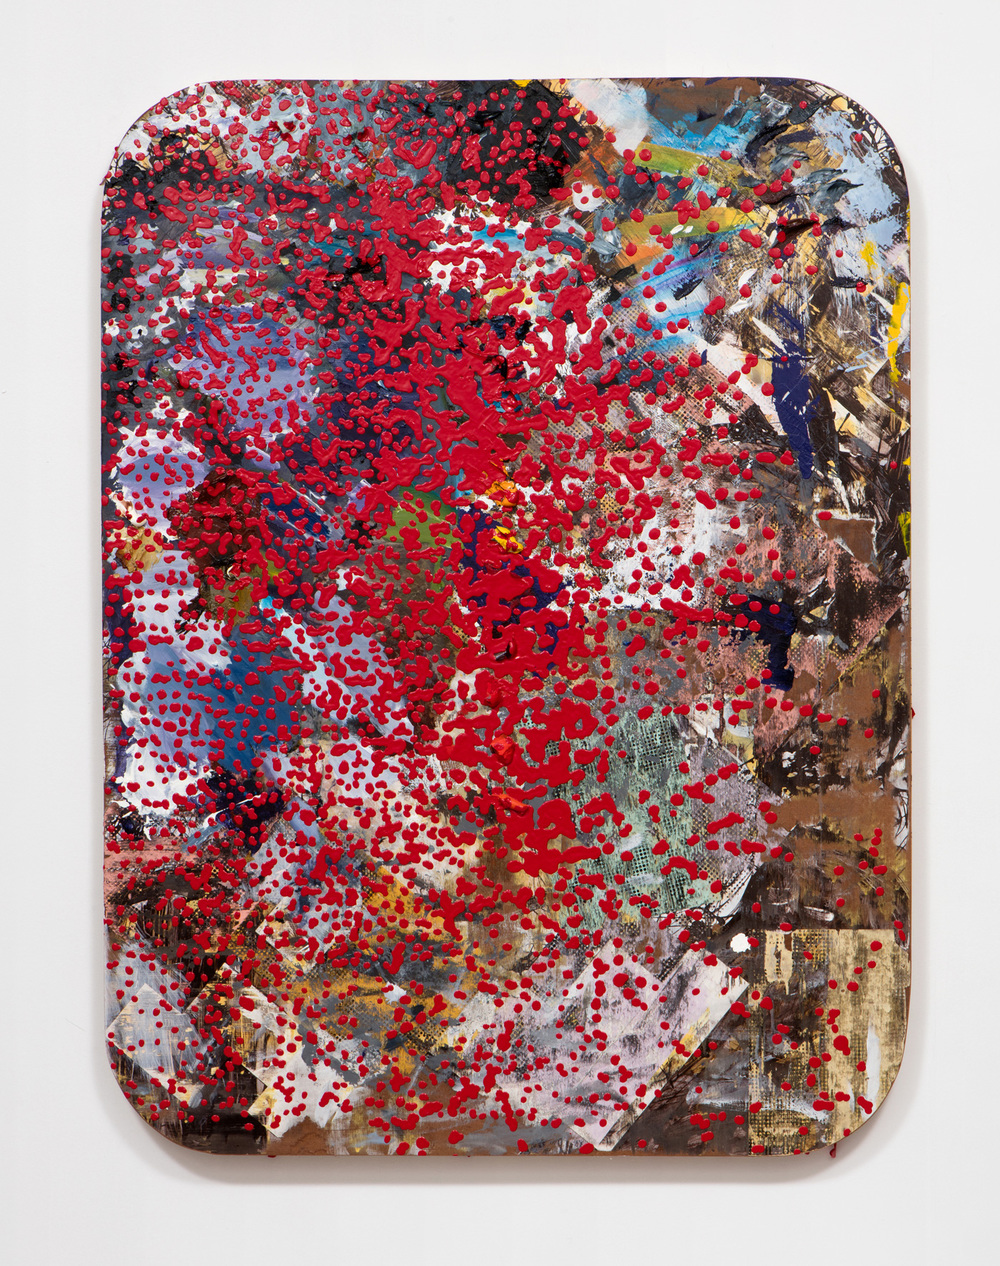 SLATE: Work Panel No. 4 (Erin Cluley Gallery 2015)  , 2015 Mixed media 48 x 36 inches